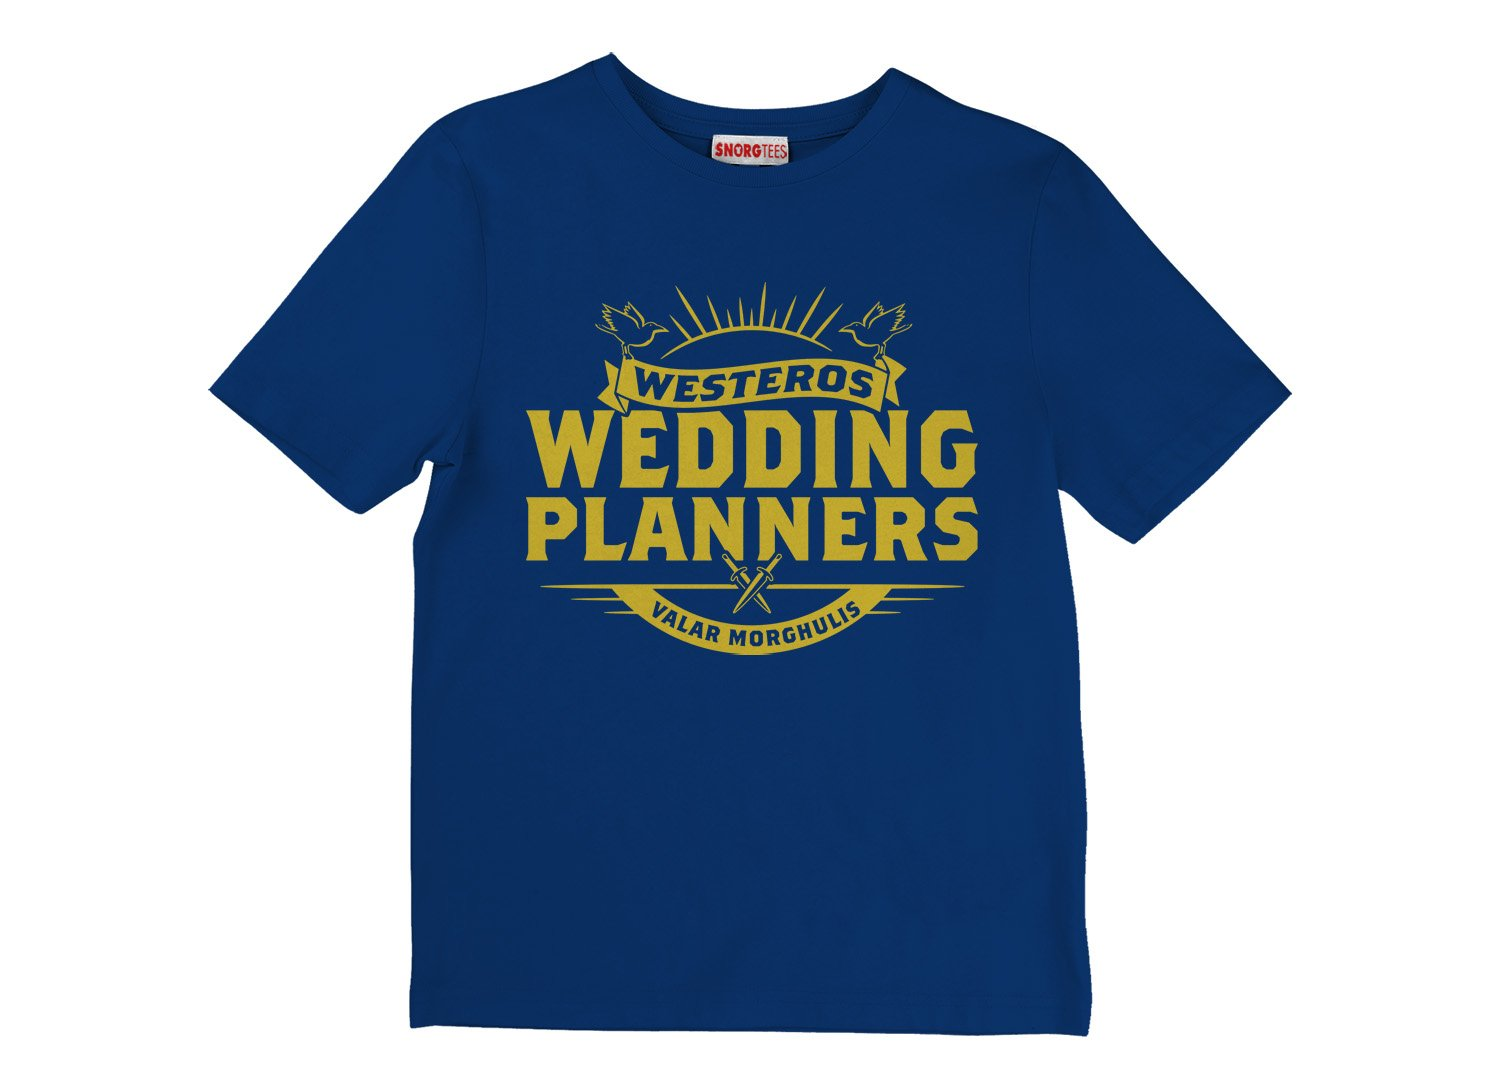 Westeros Wedding Planners on Kids T-Shirt